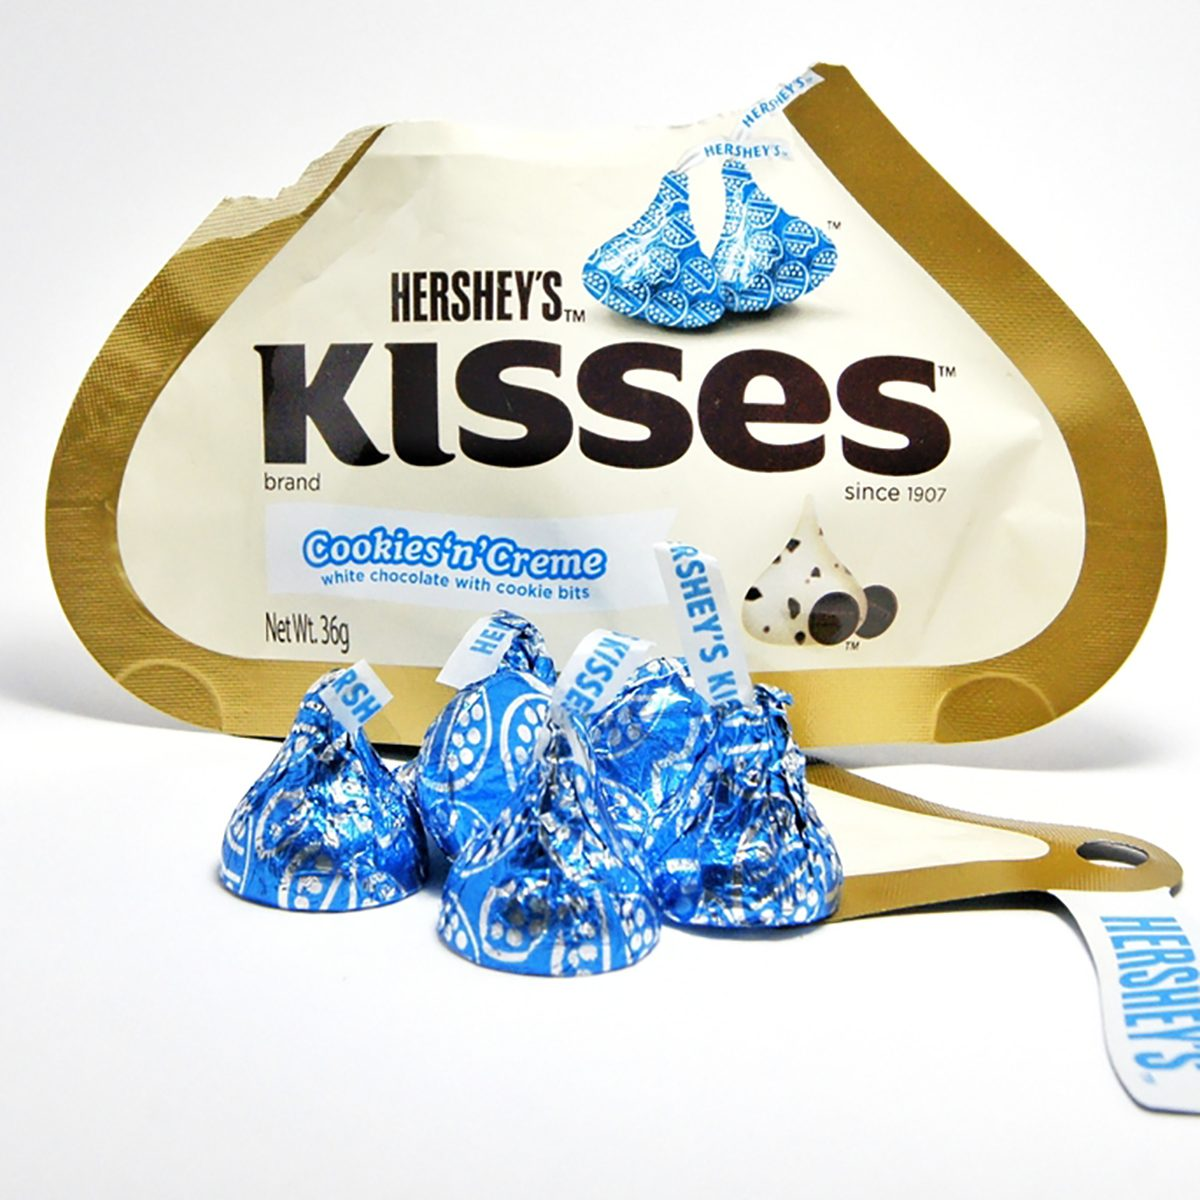 A cookies and cream package of Hersheys Kisses.